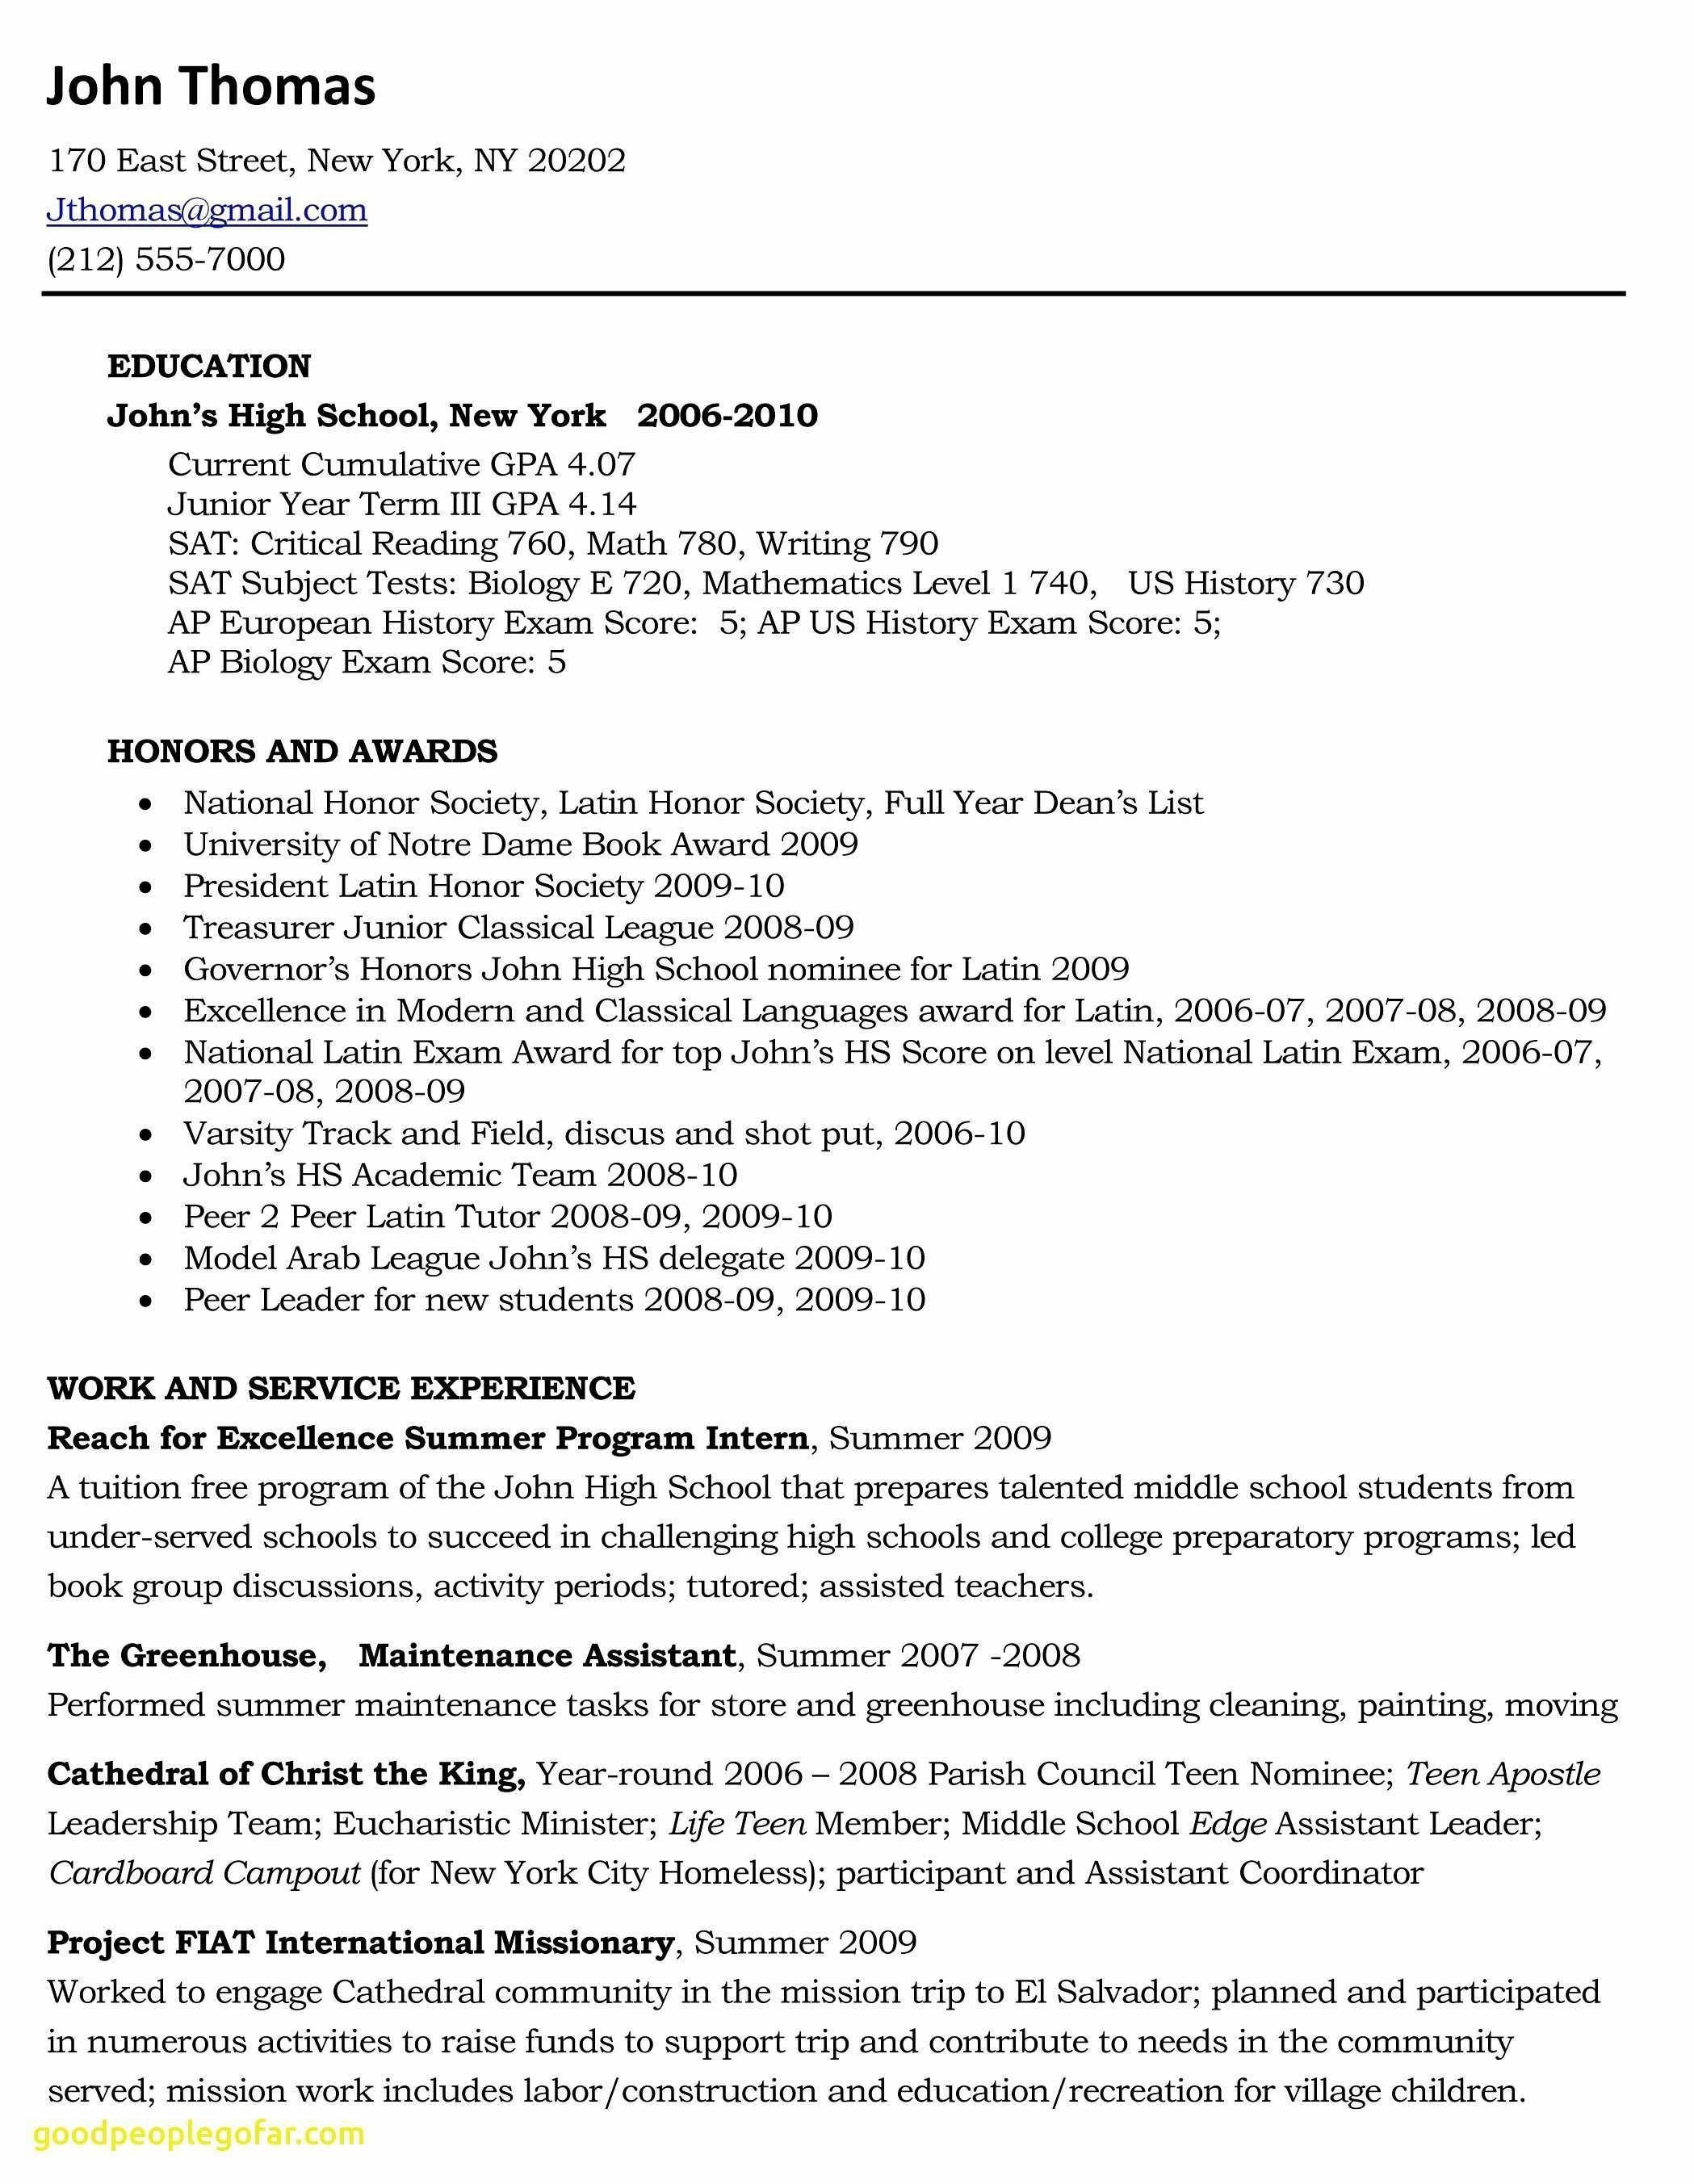 Make A Resume For Free Need To Do A Resume 55 I Need To Make A Resume For Free Of Need To Do A Resume make a resume for free|wikiresume.com